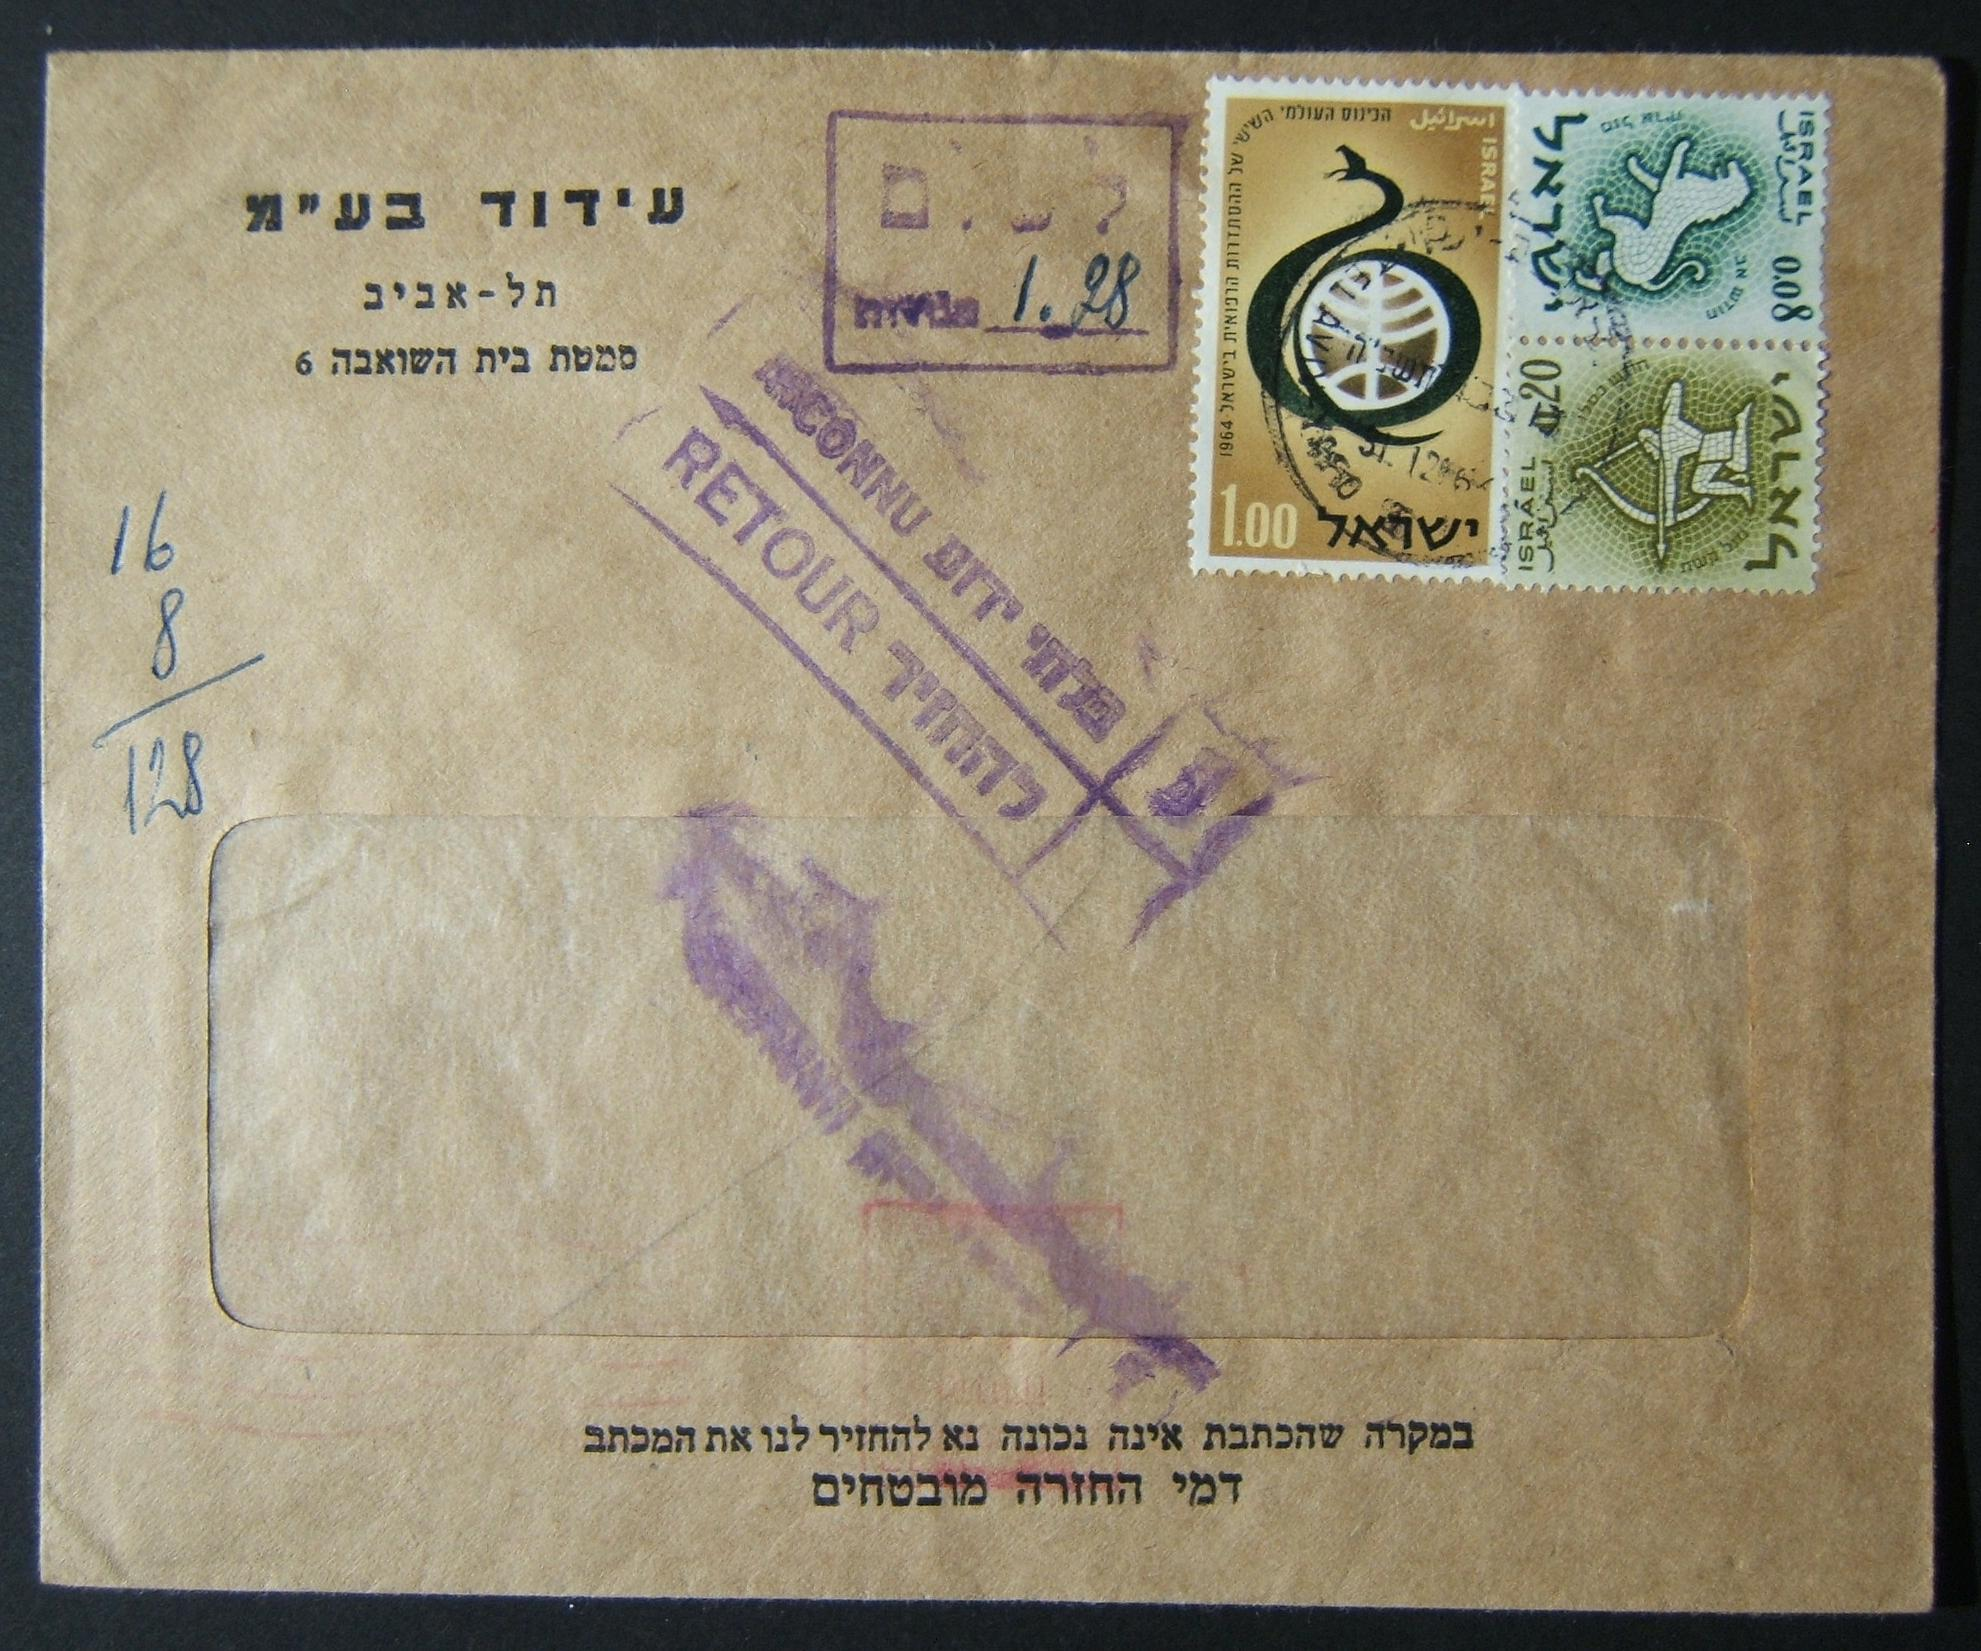 1964 domestic 'top of the pile' taxed franking: Dec. 1964 printed matter commercial cover ex TLV branch of Idud Ltd. franked by machine prepayment at the DO-11 period 8 Ag PM rate